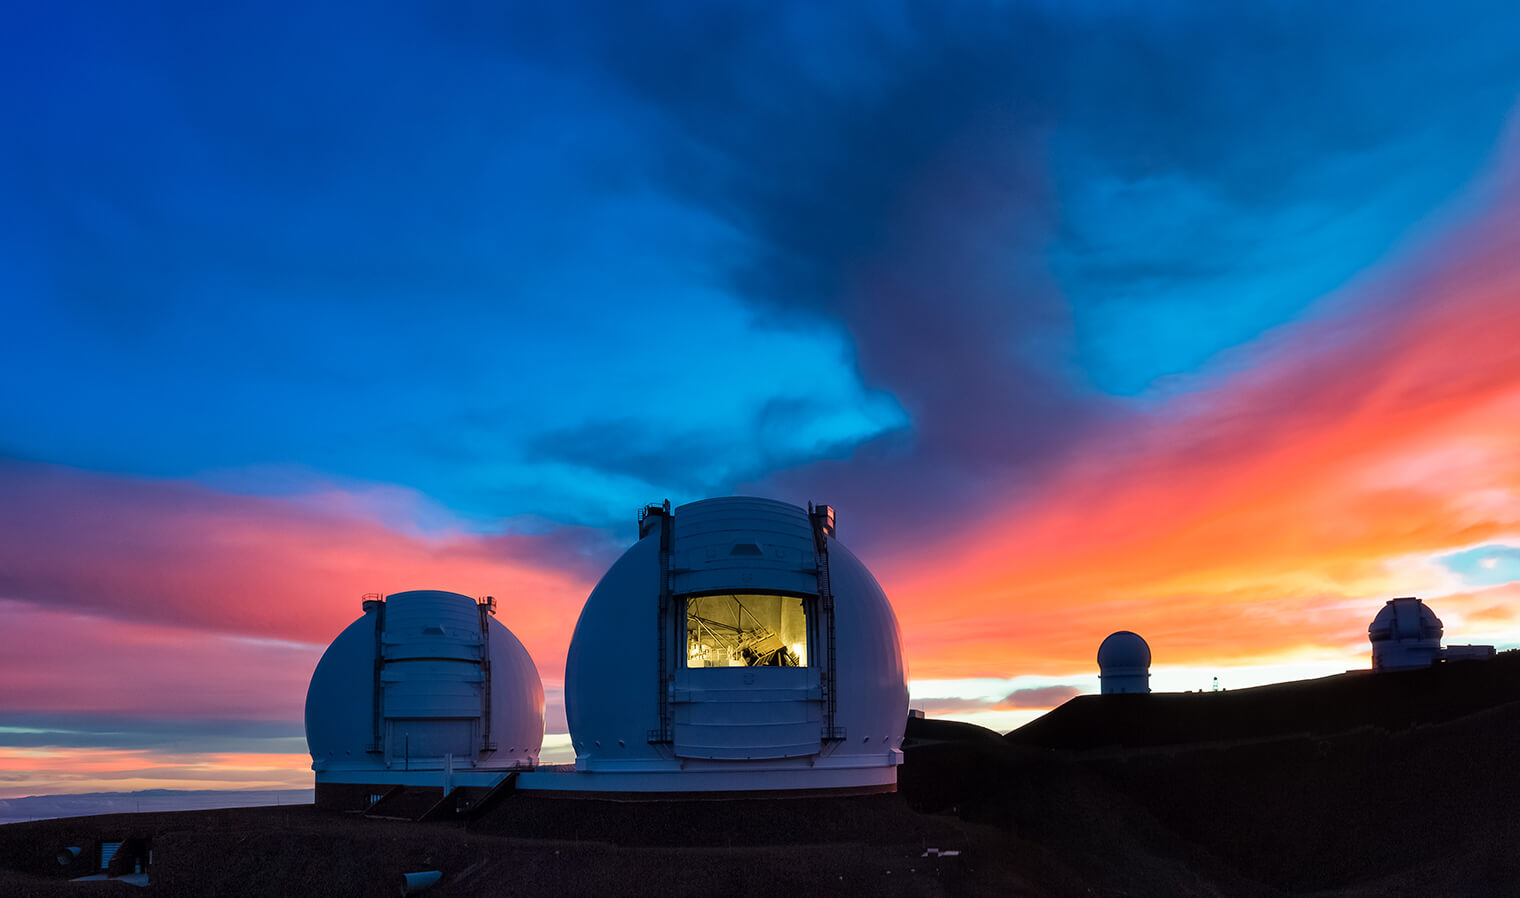 Keck Observatory at sunrise on top of the Maunakea mountain summit in Hawaii